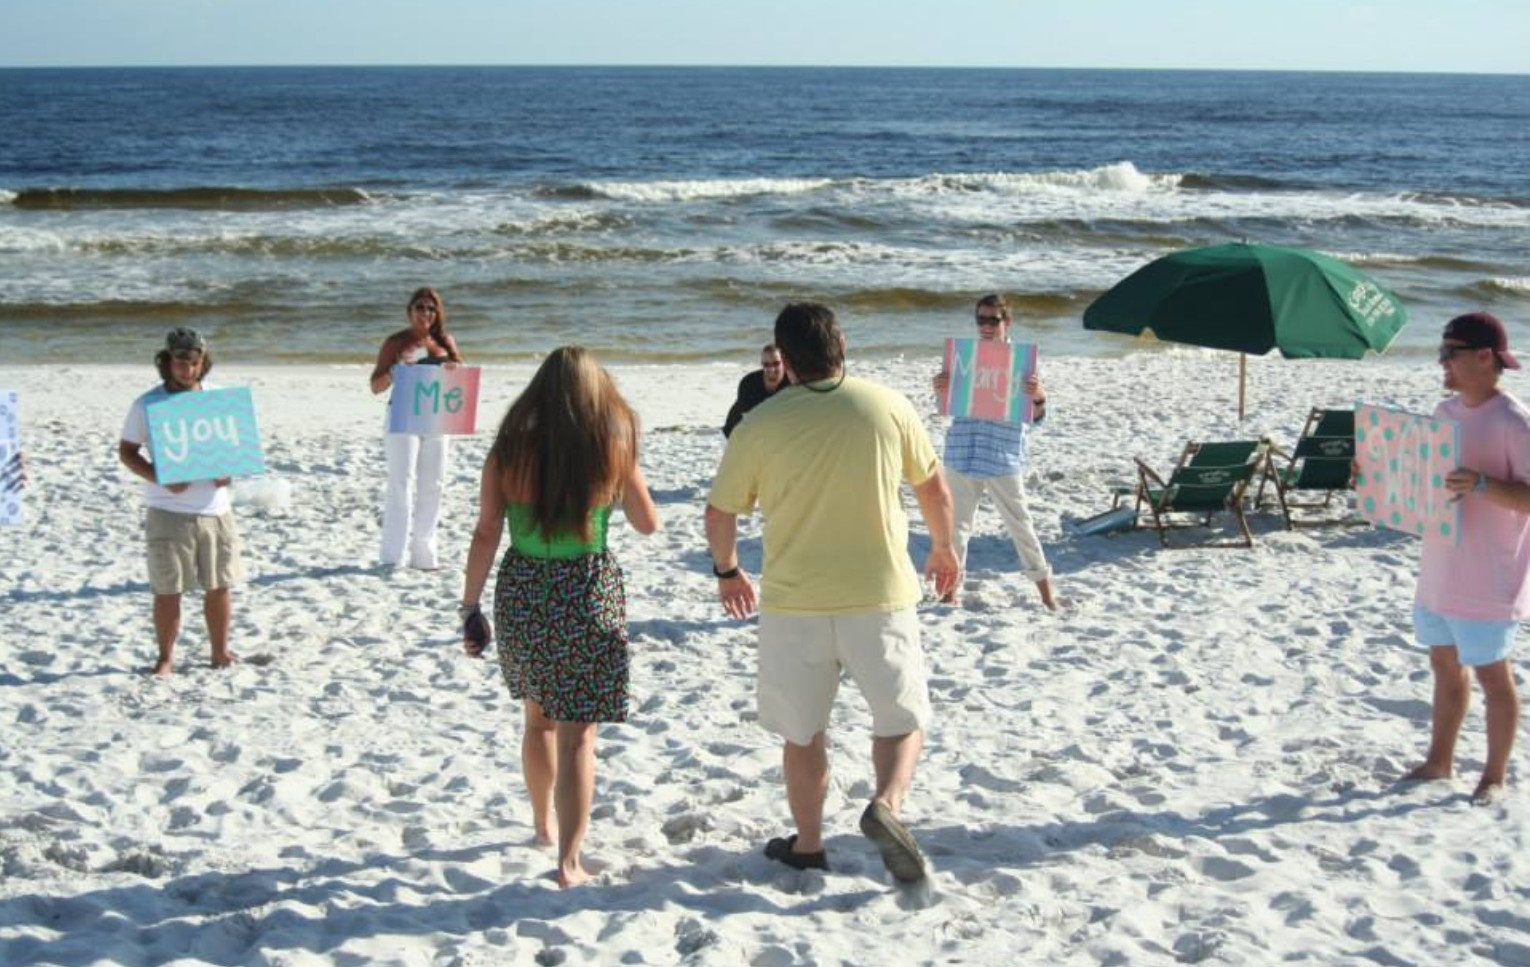 Engagement Proposal Ideas in Santa rosa beach, fl